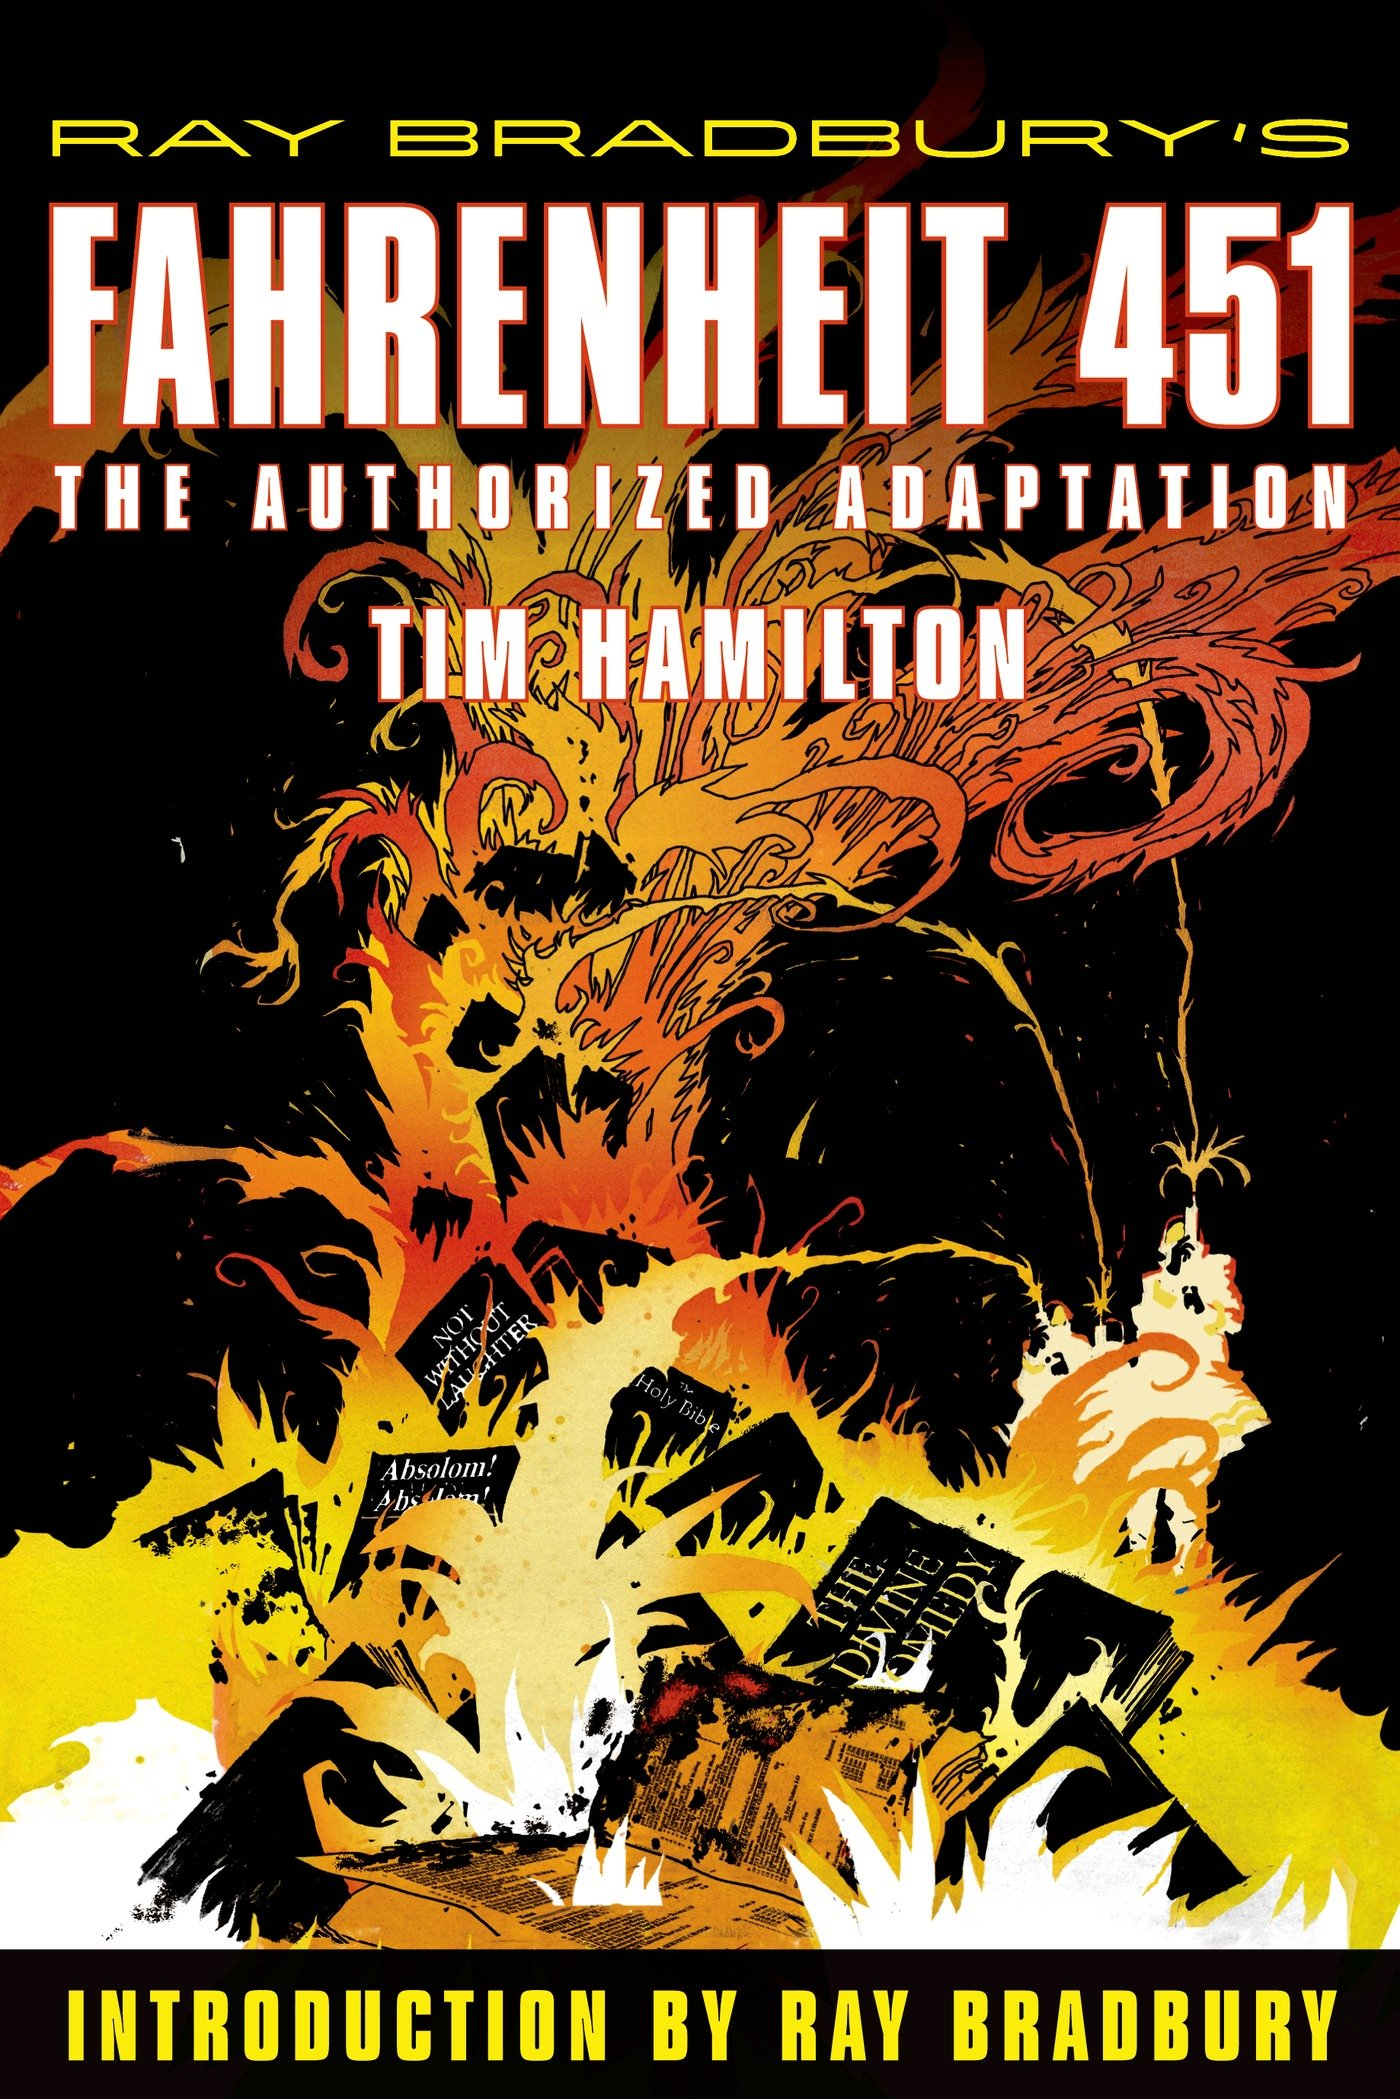 Ray Bradburys Fahrenheit 451: The Authorized Adaptation Ray Bradbury Graphic Novels: Amazon.es: Ray Bradbury, Tim Hamilton: Libros en idiomas extranjeros